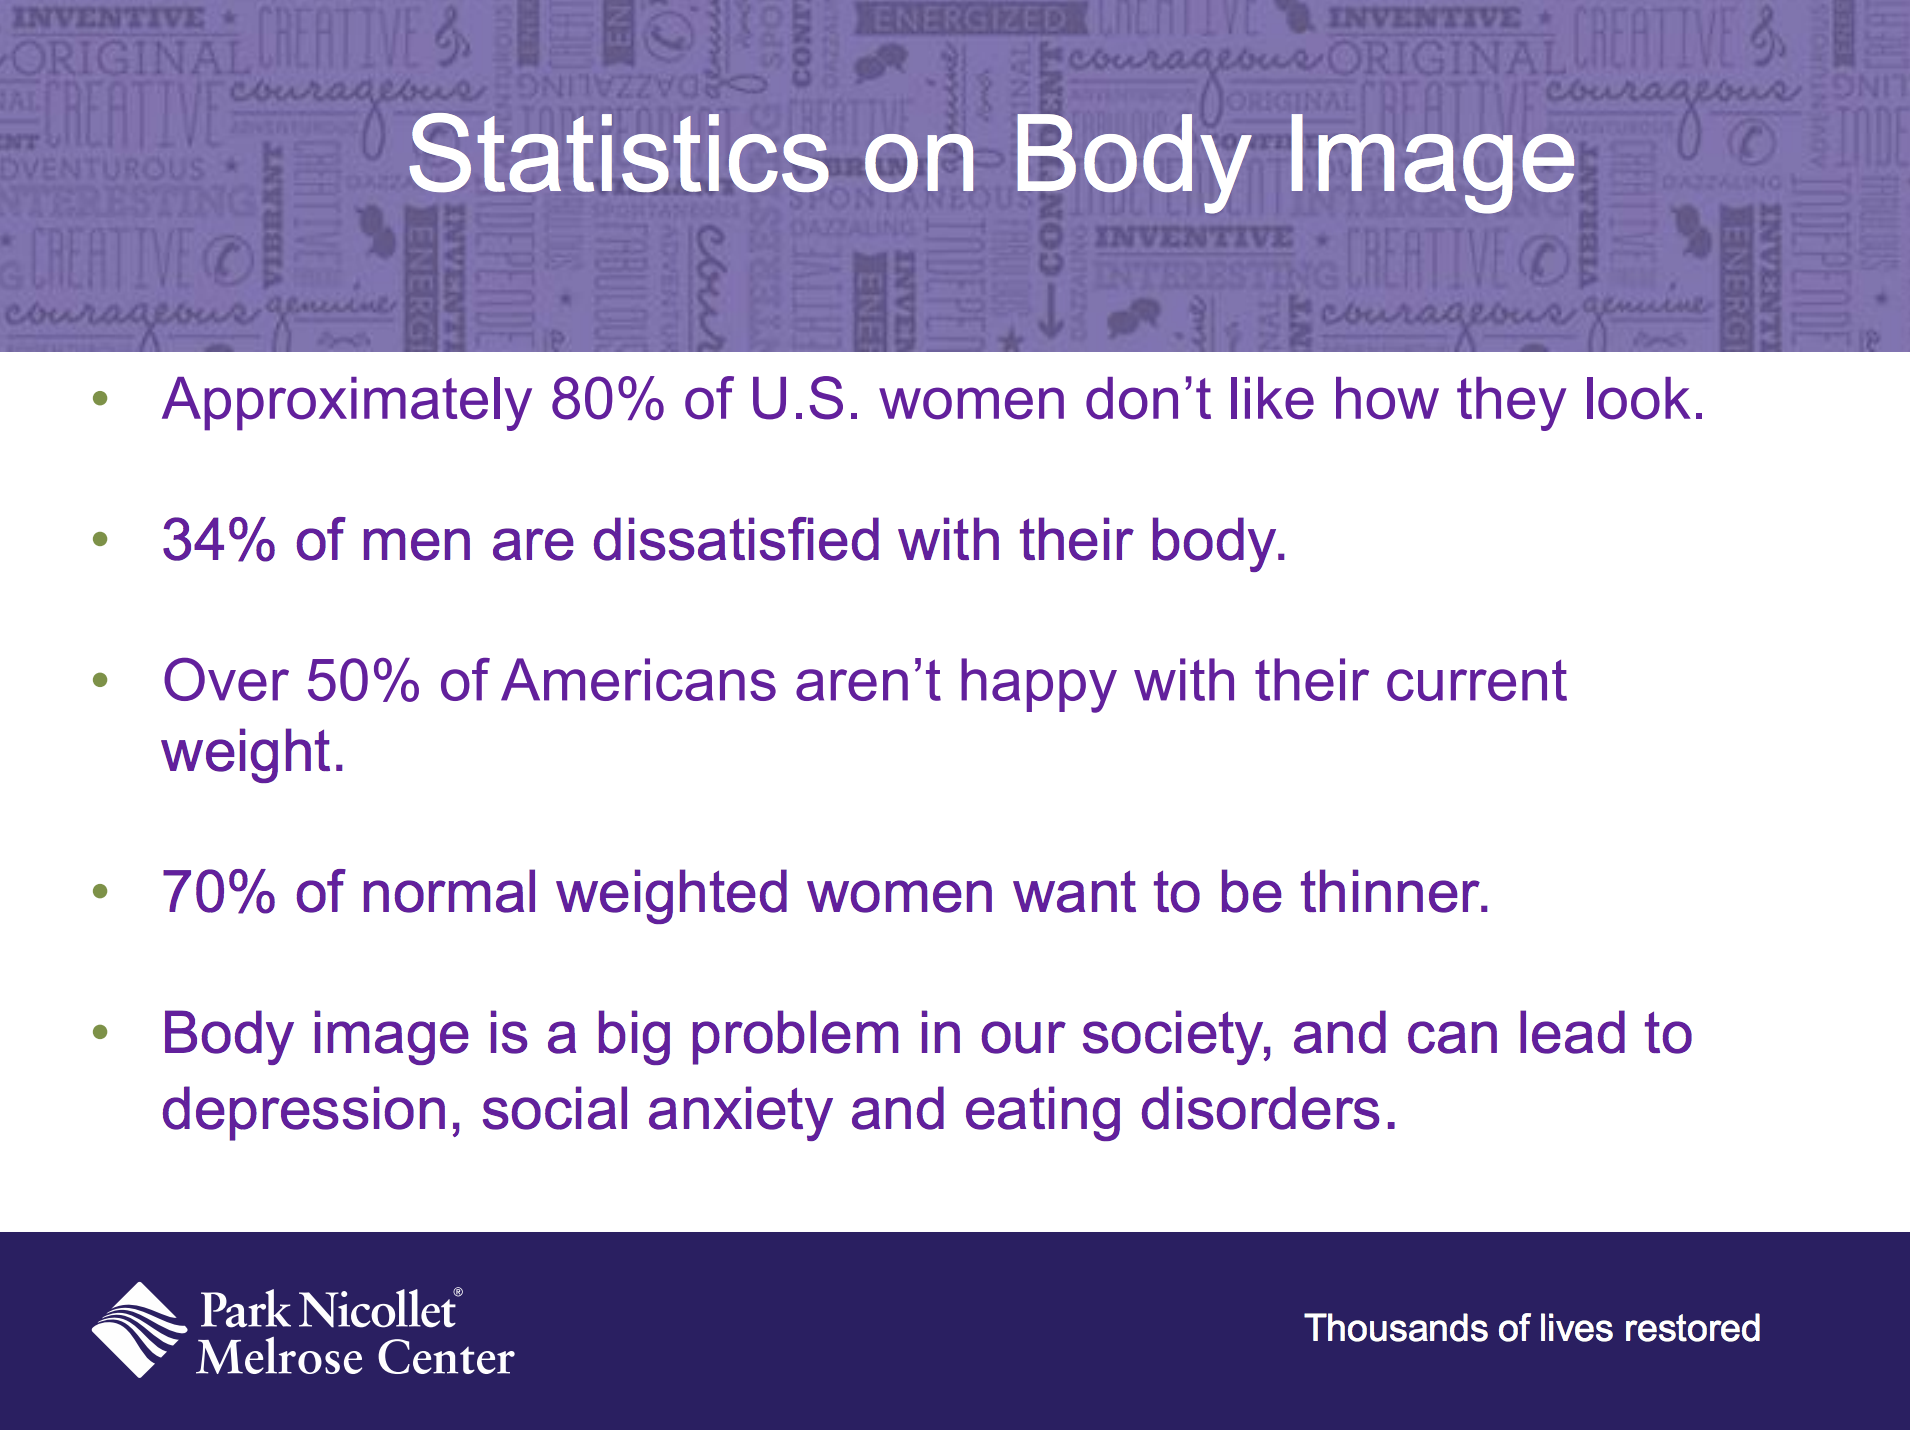 We are in the middle of a body image crisis